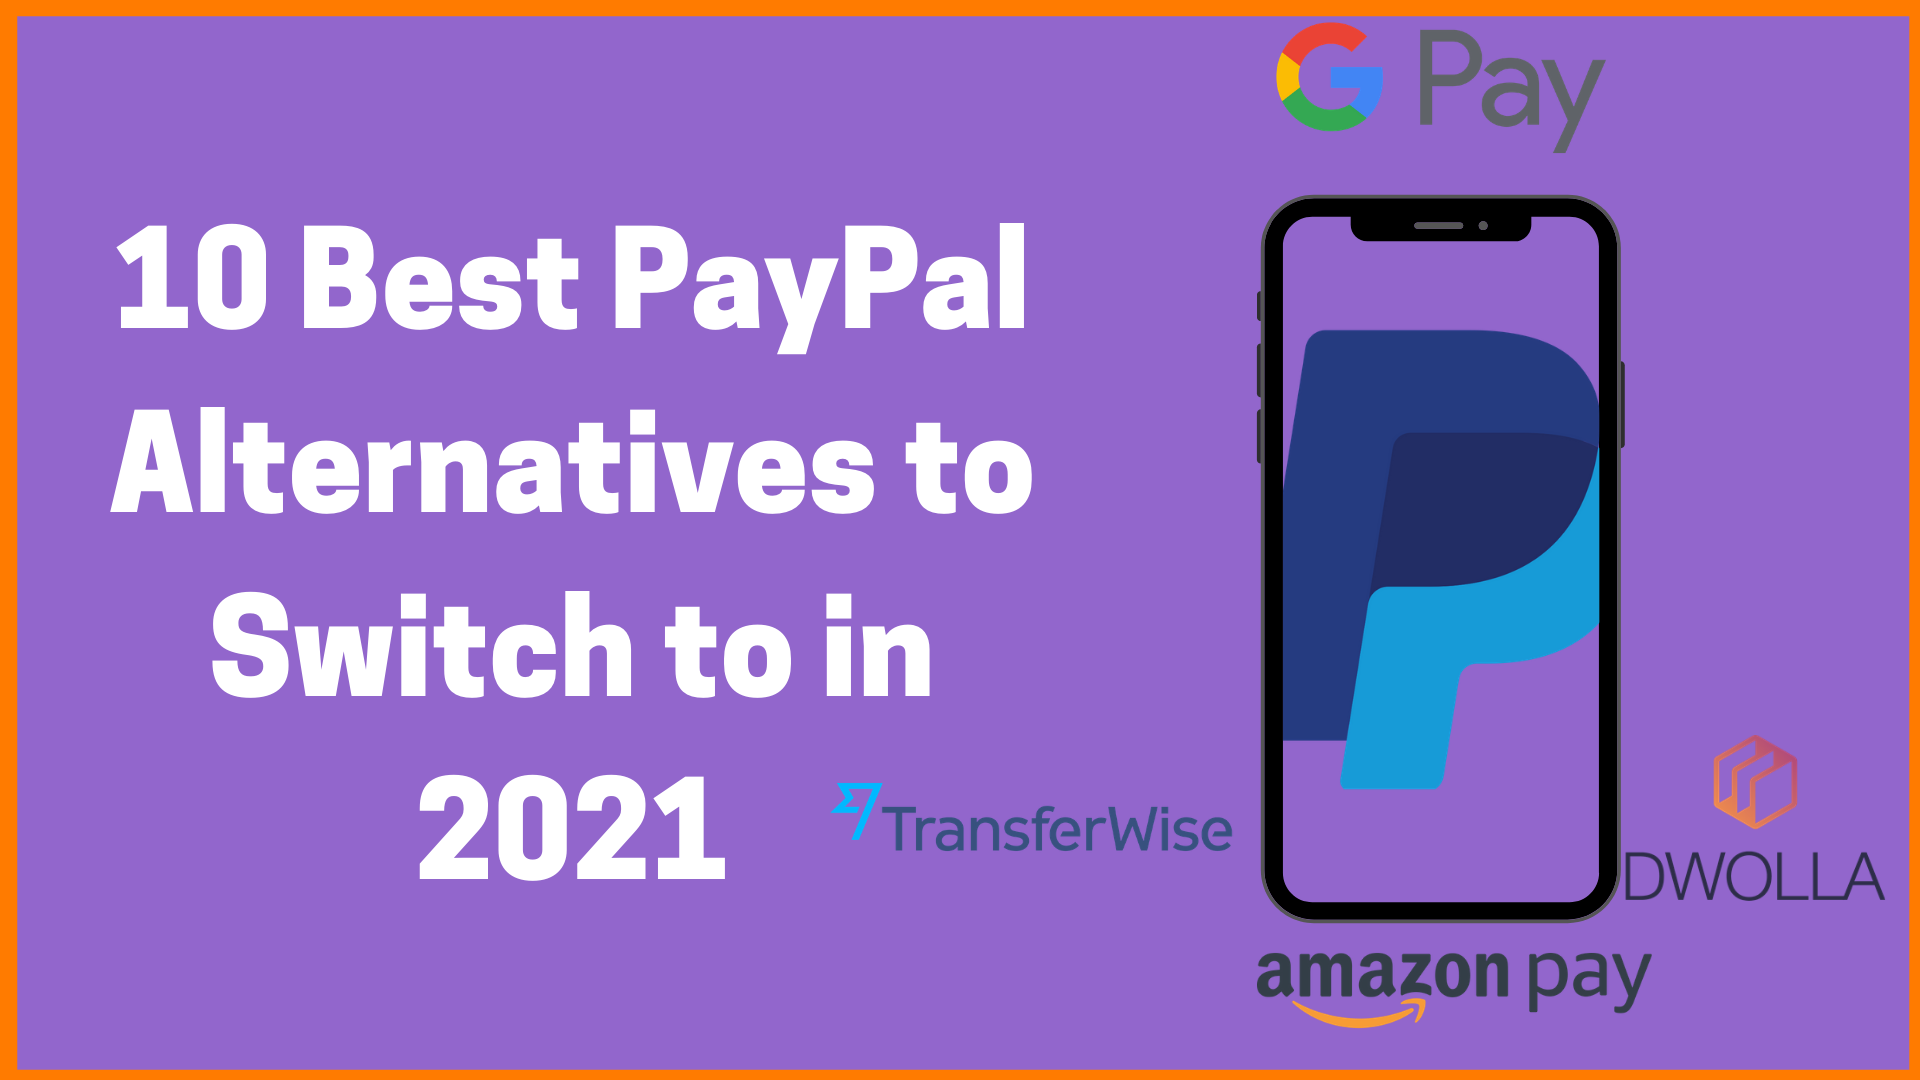 10 Best PayPal Alternatives to Switch to in 2021